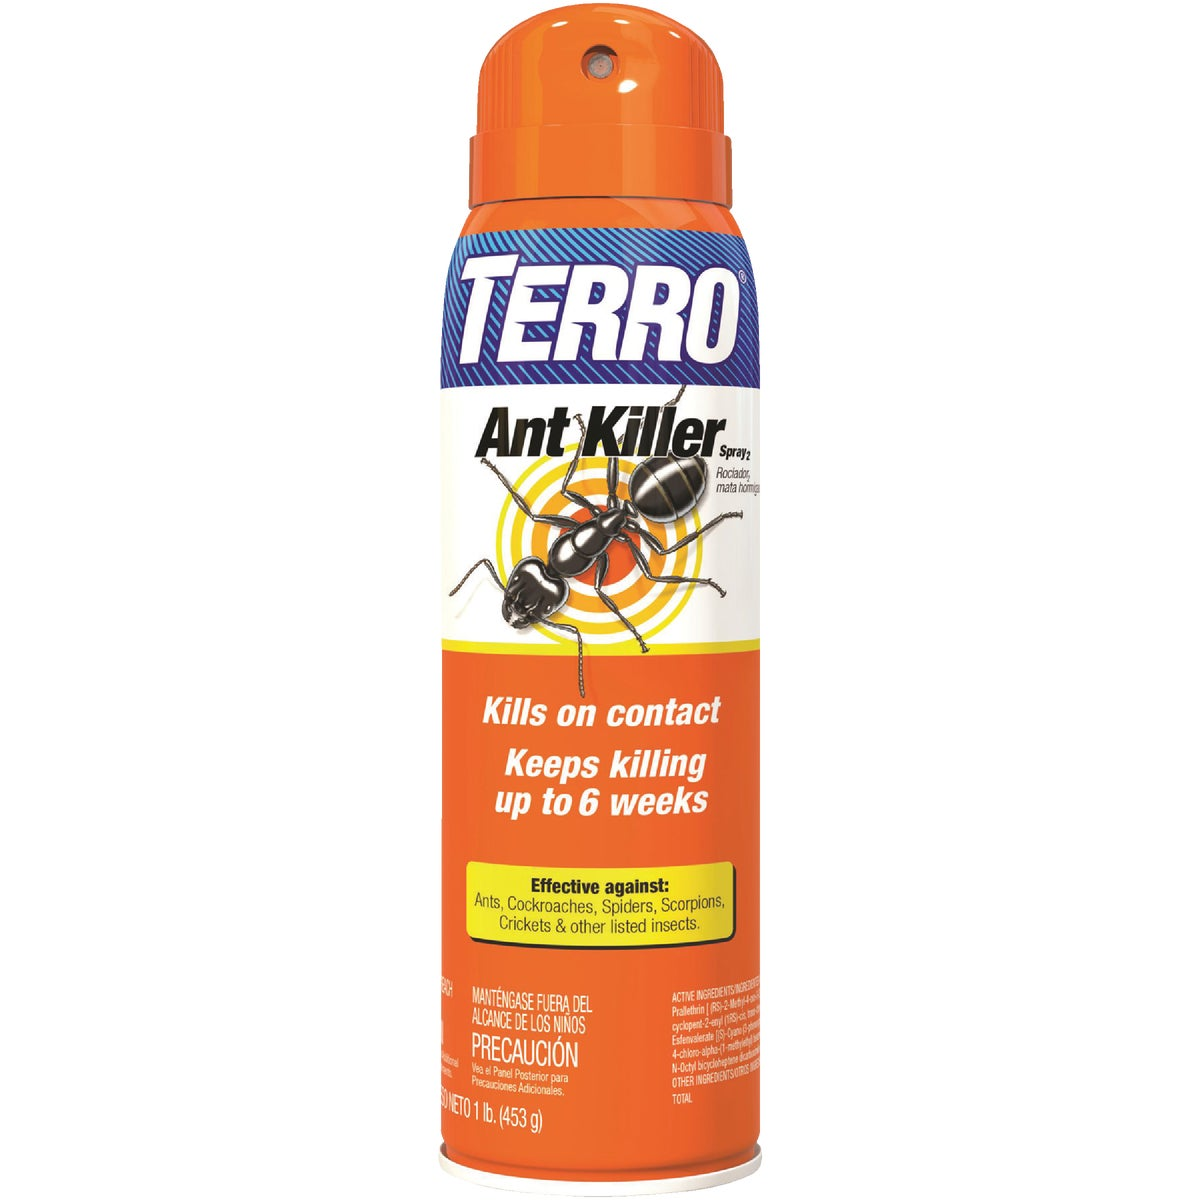 16OZ AEROSOL ANT KILLER - T401-6 by Woodstream Corp